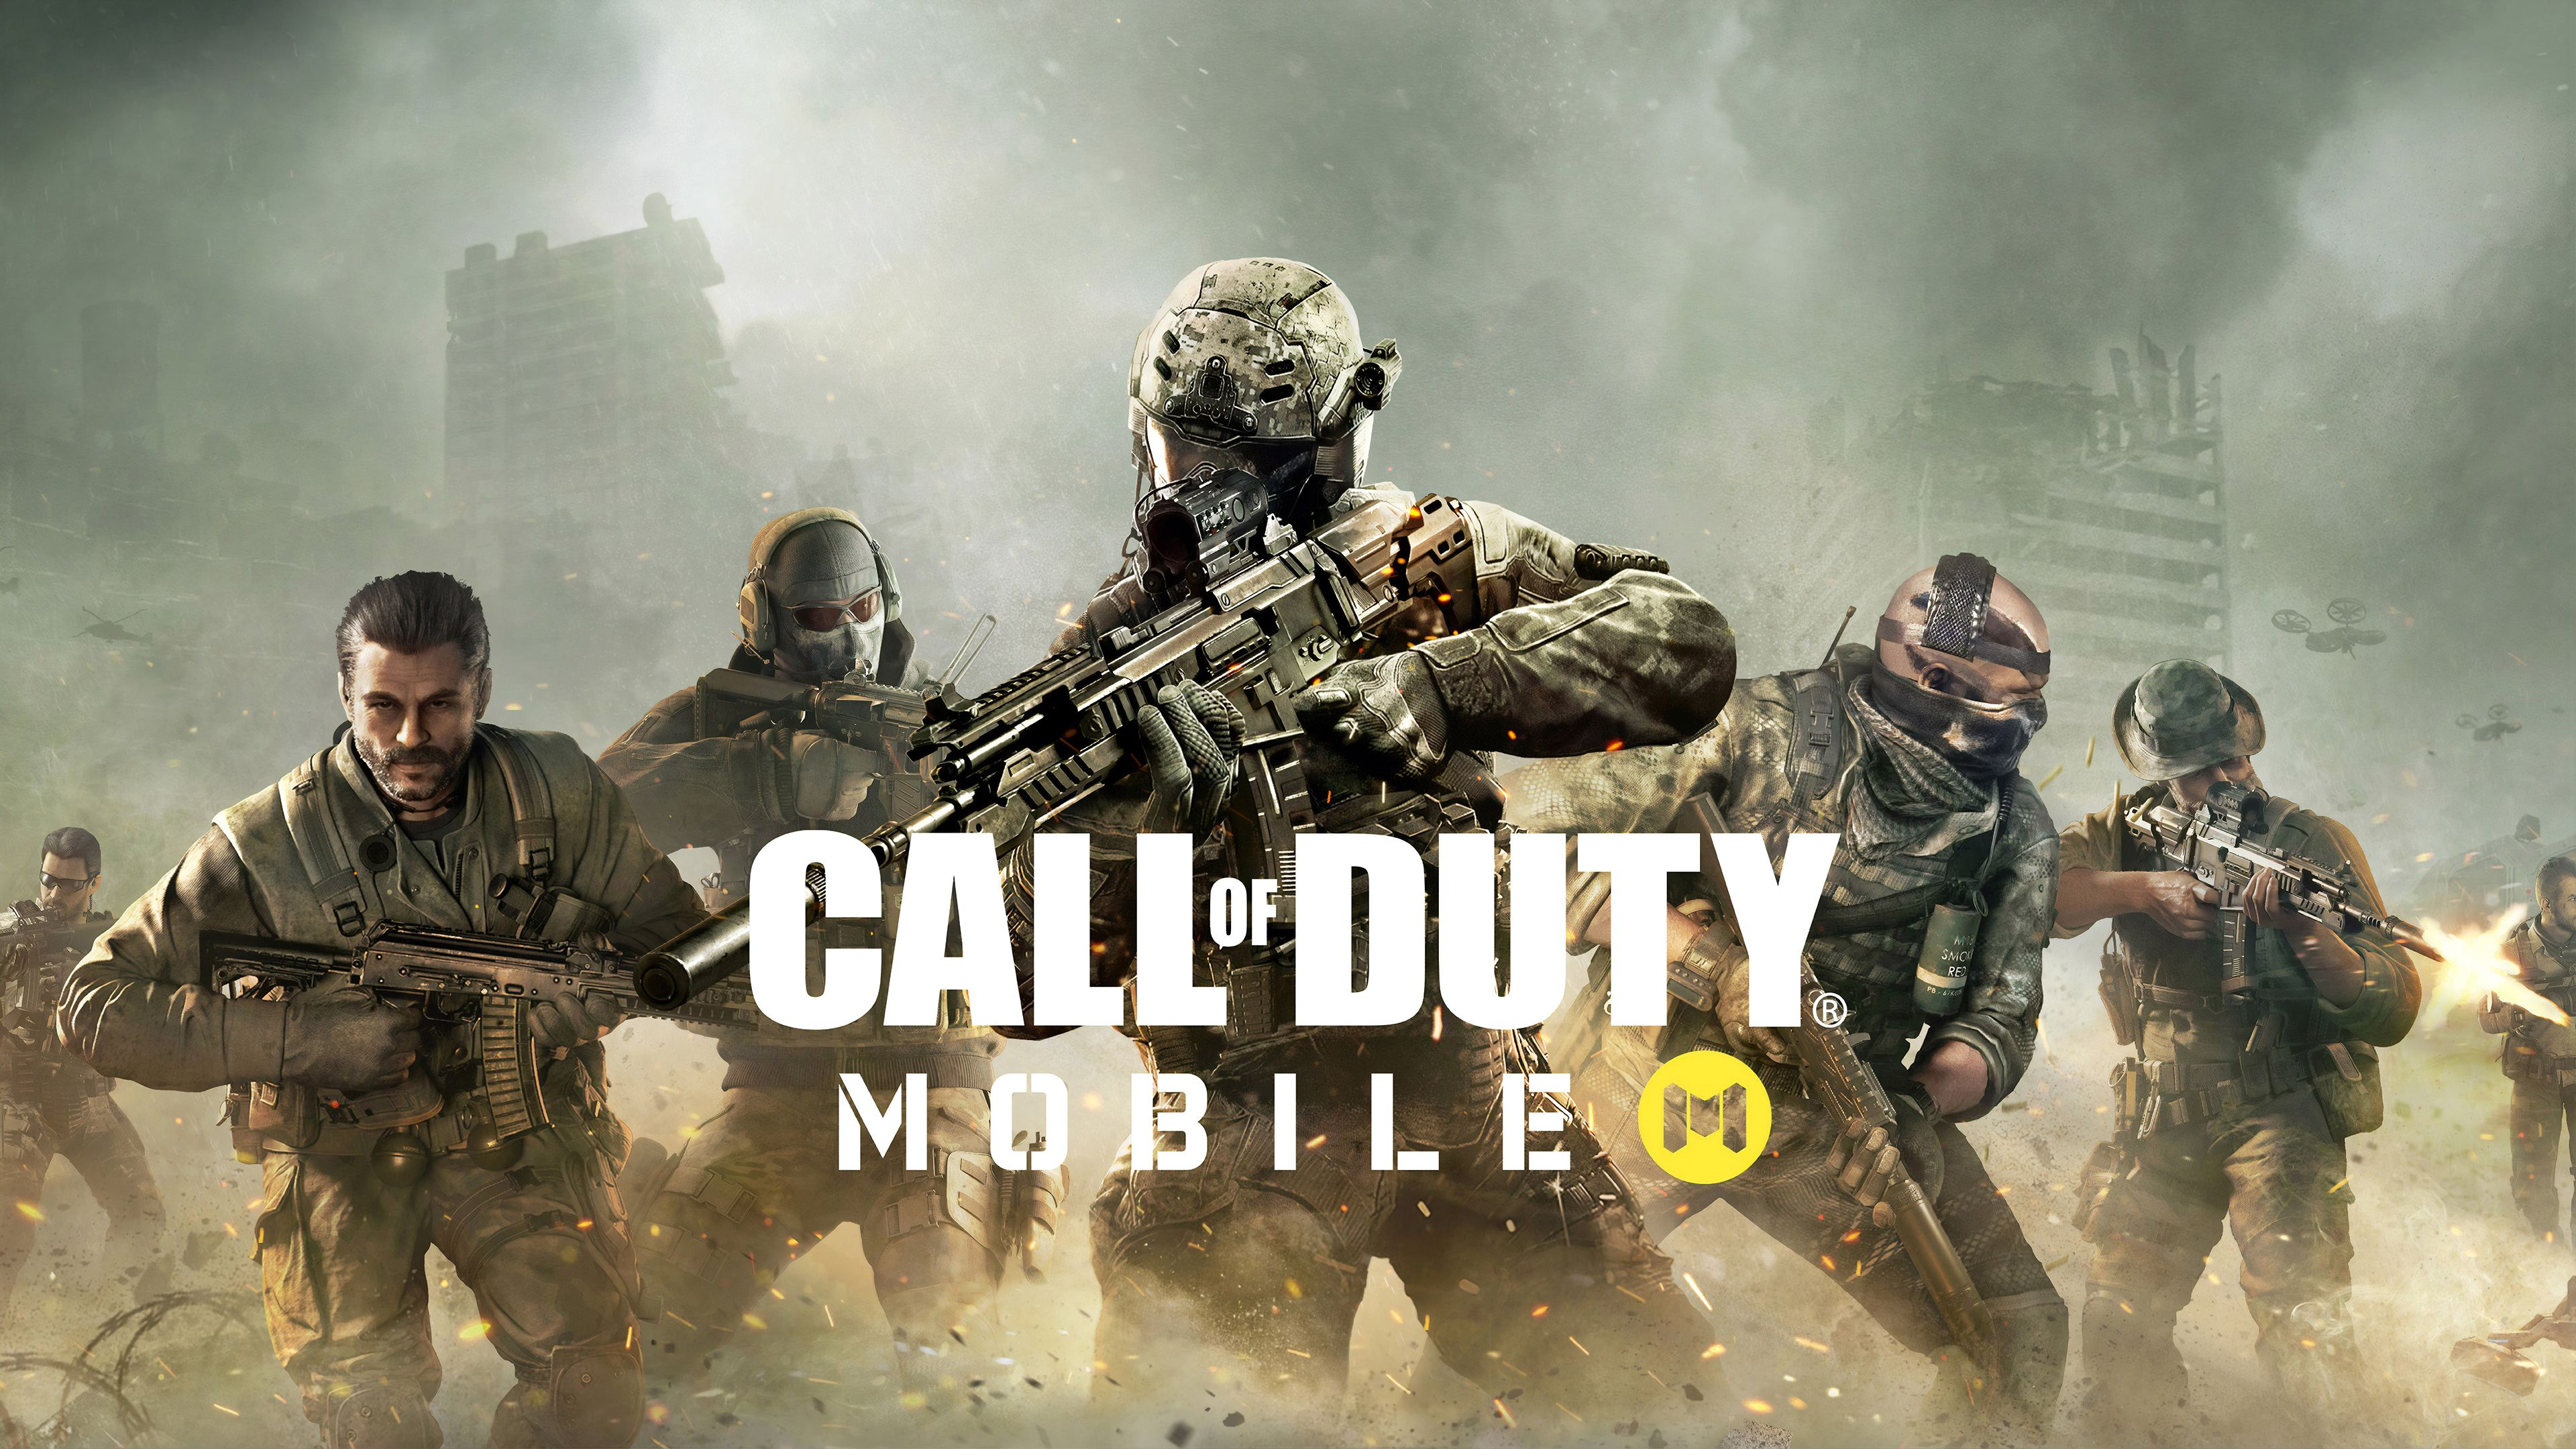 Call of Duty: Mobile latest update brings Tank Battle Mode, New Seasonal Challenges, and more